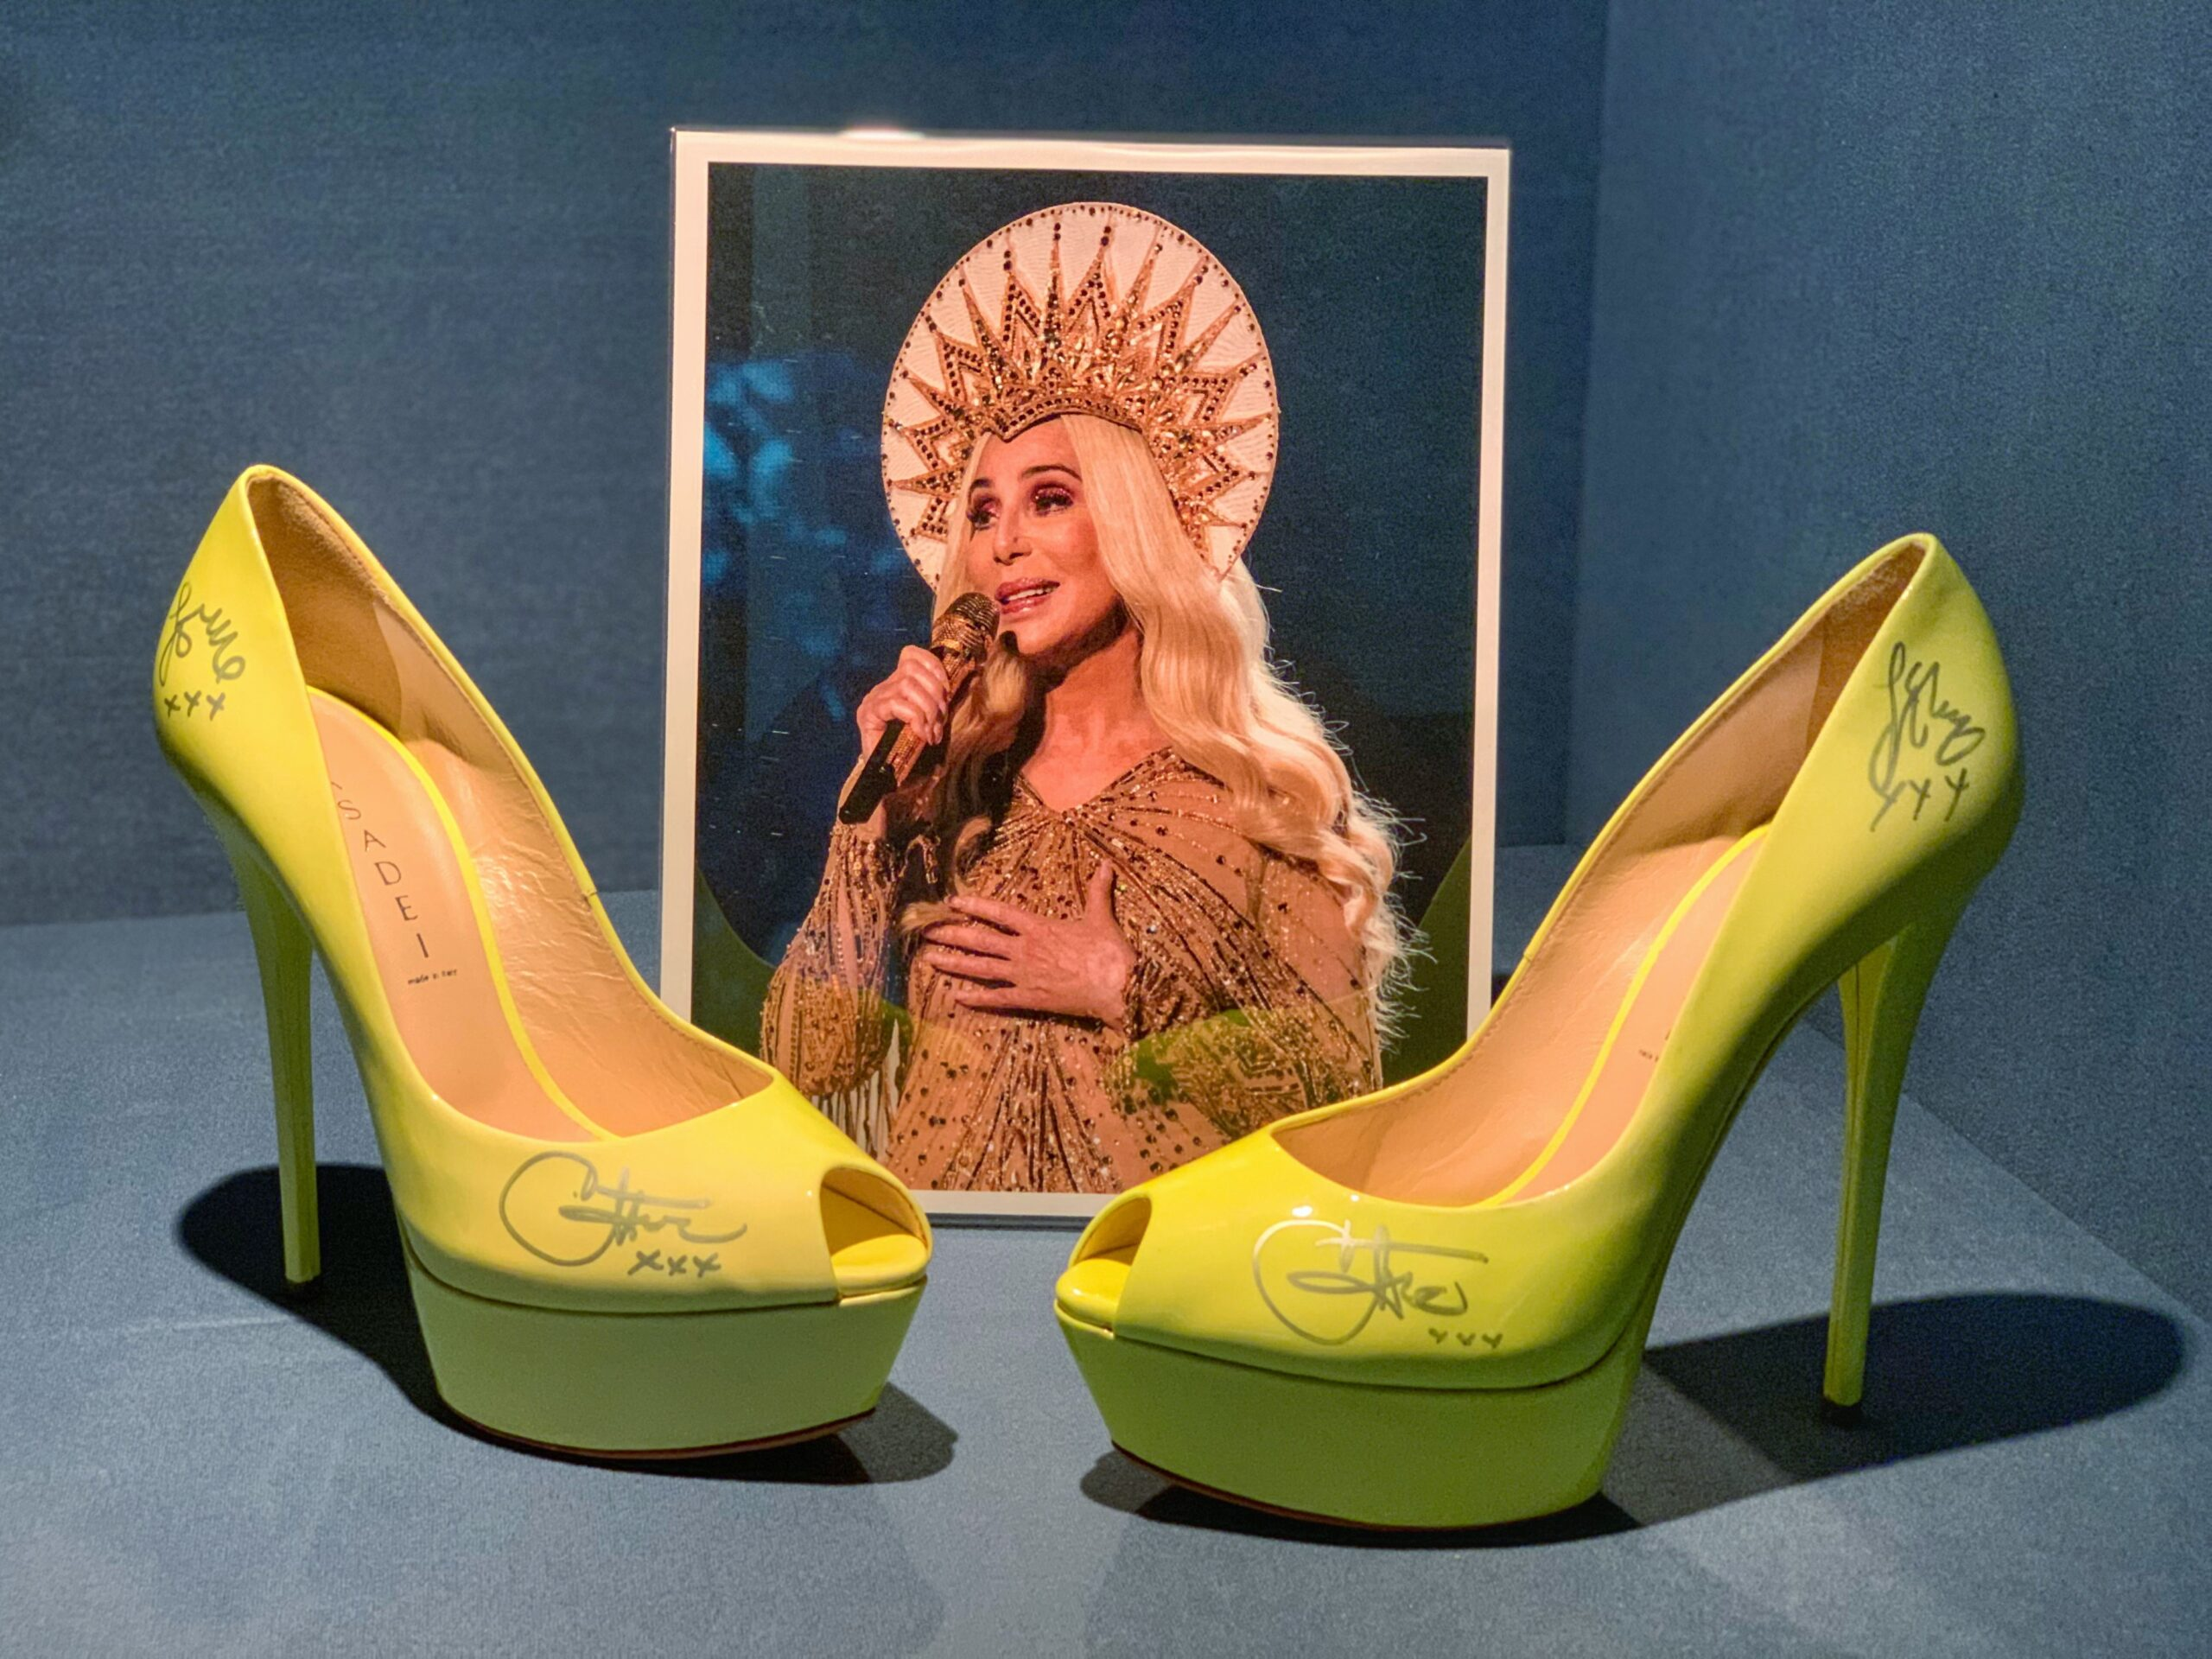 Yellow shoes worn by Cher